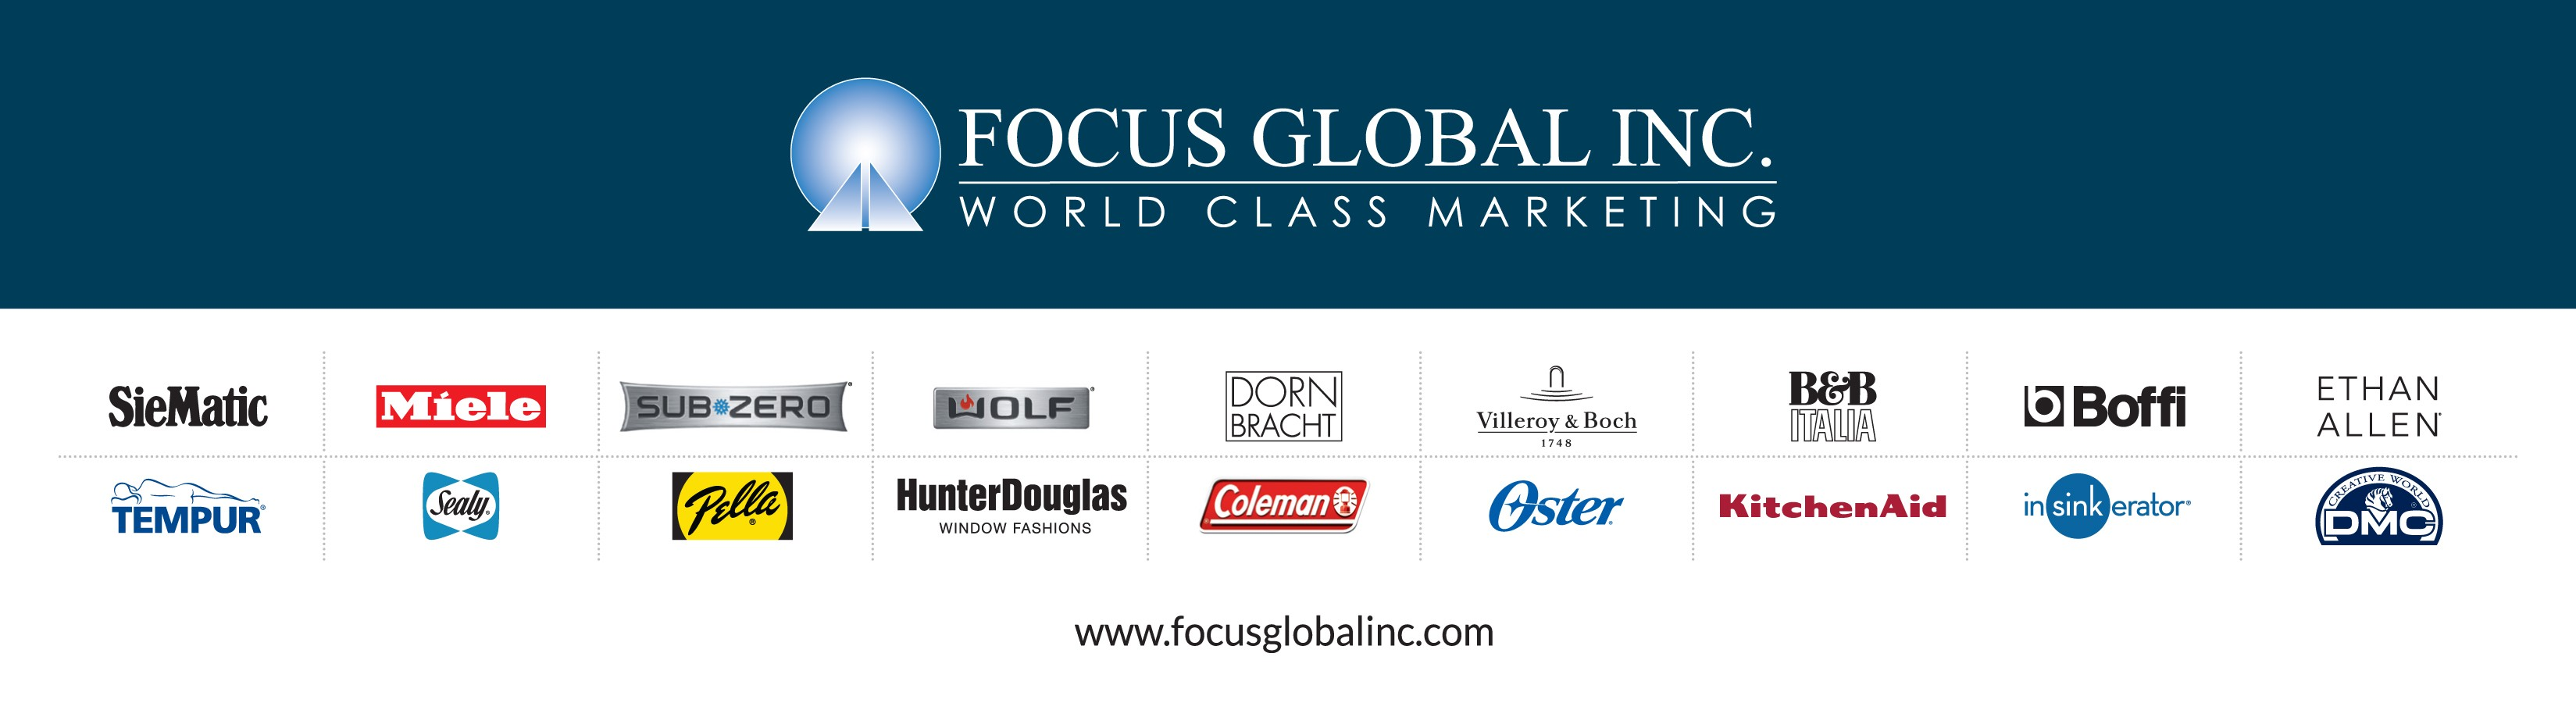 Focus Global Inc.